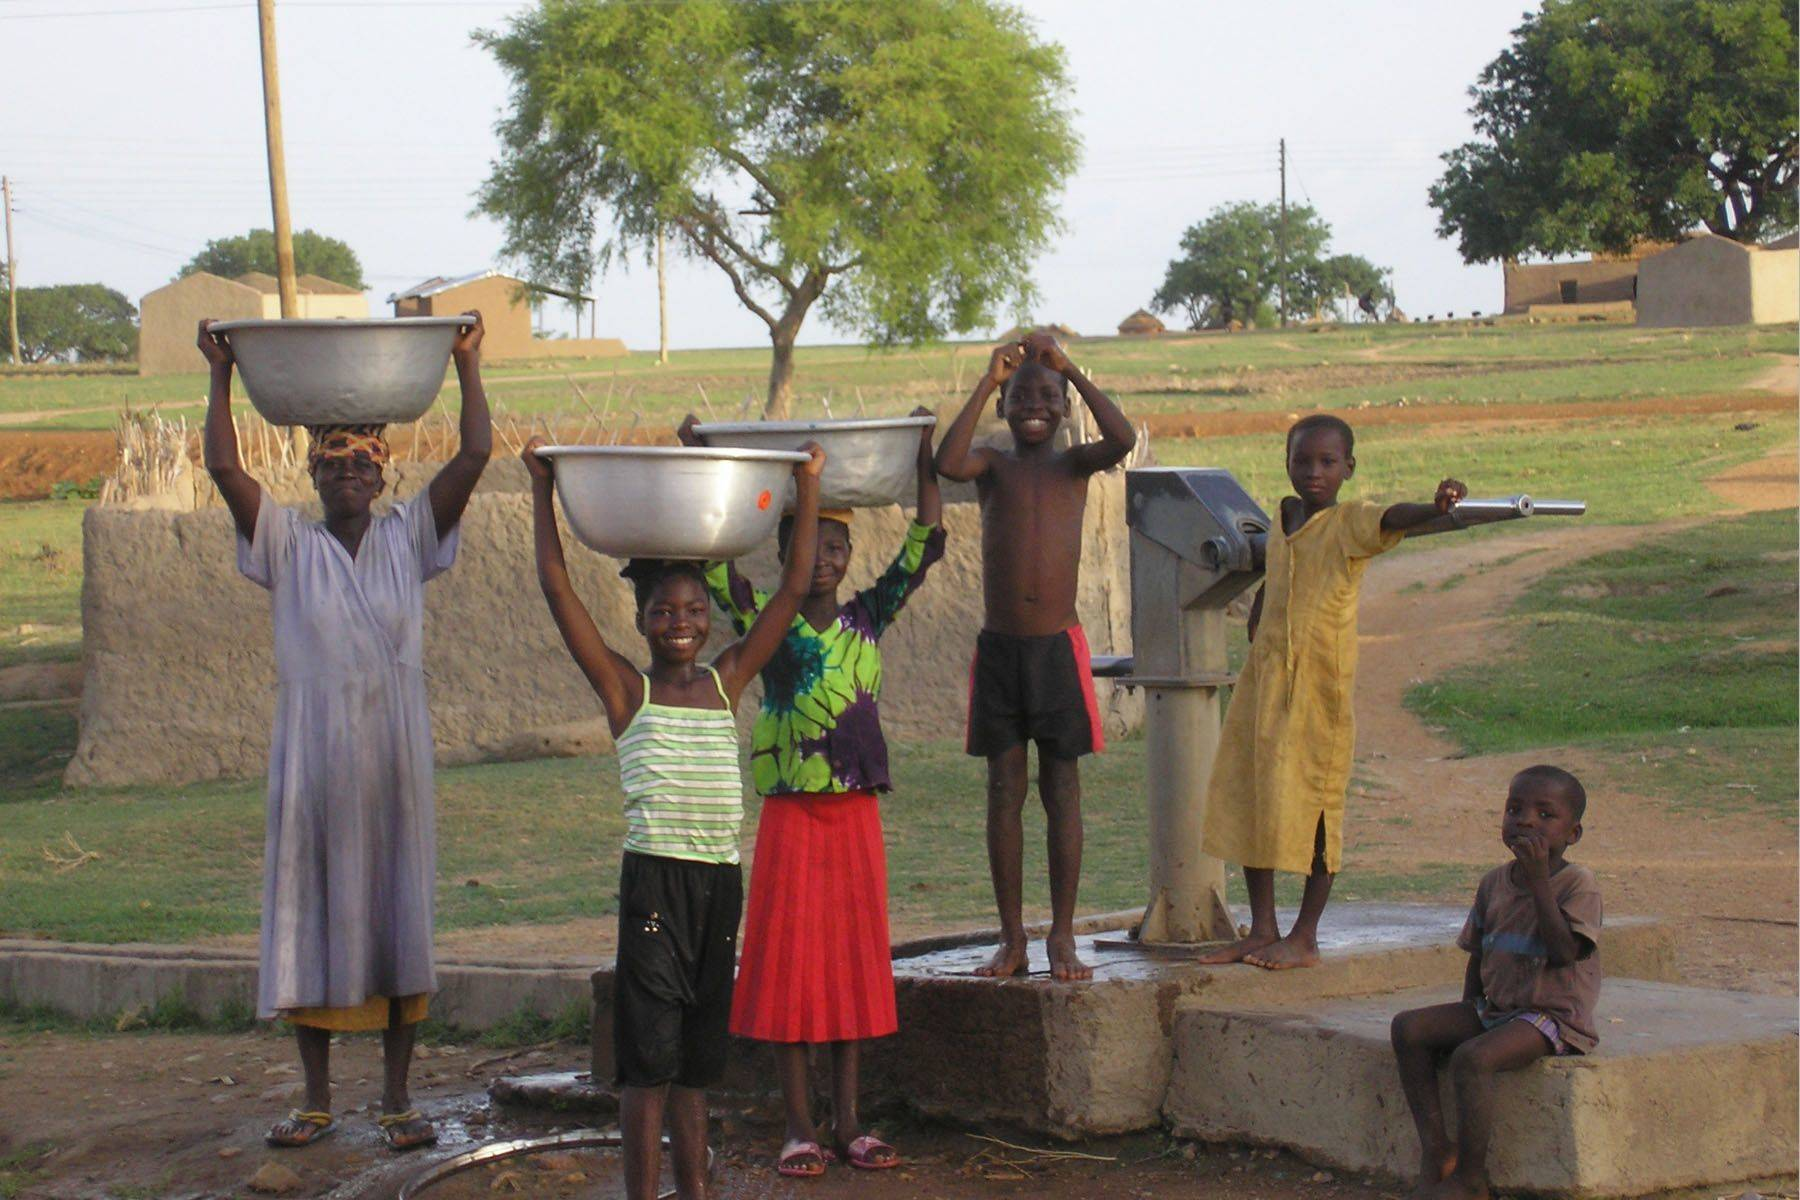 c852124cfa83c5dcb7b7_Outreach_-_Clean_water_-_kids-and-well_in_Ghana__Harvey_Wang_ERD__.original.jpg